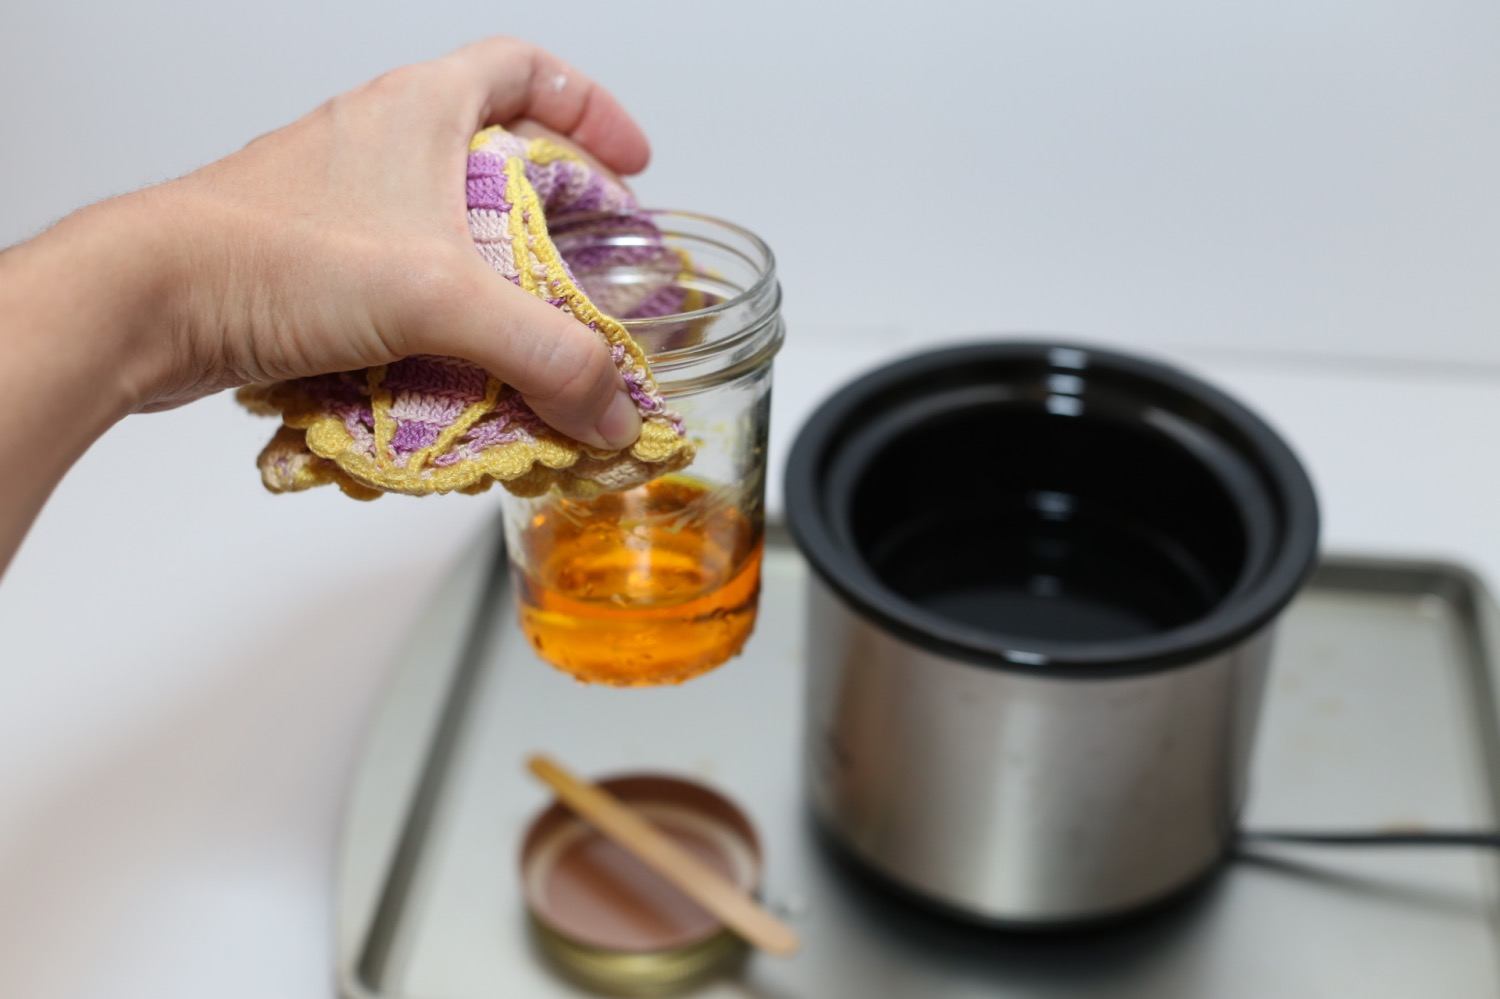 remove the mason jar and wax from the heat